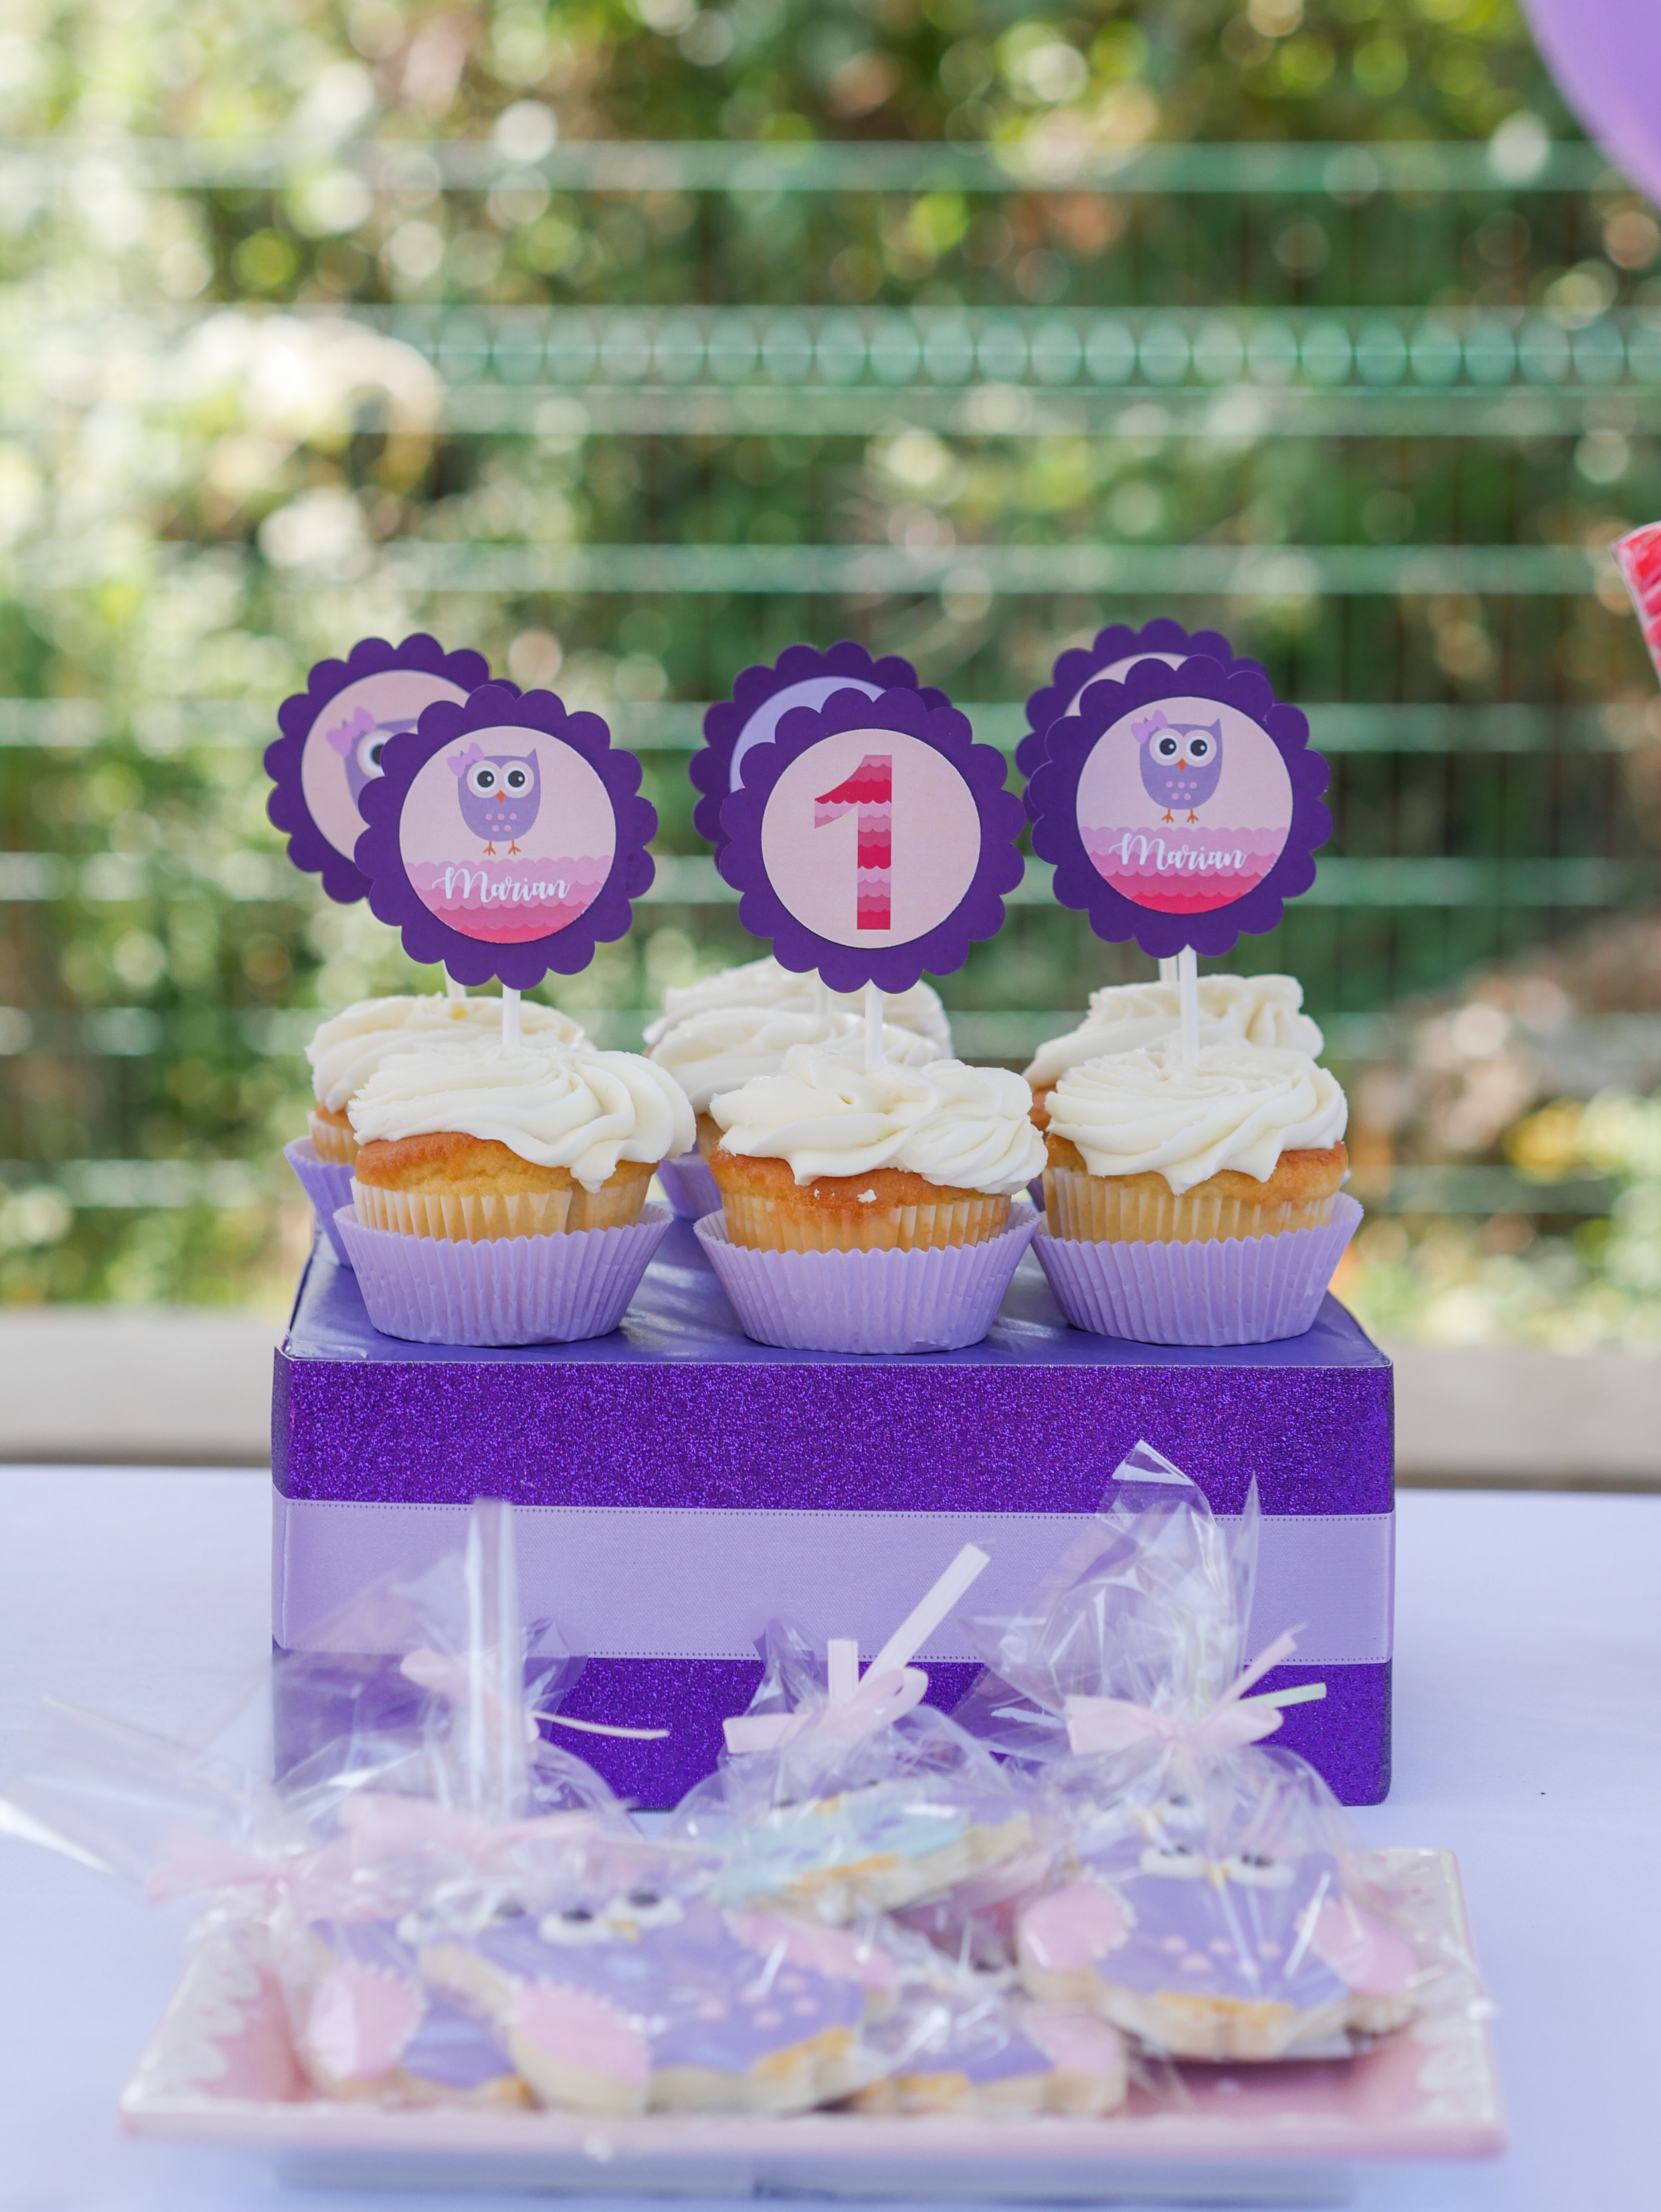 Purple at a little girls birthday party is super cute and makes it stand out from all the pink parties. Full details on this owl themed first birthday party can be found on www.minteventdesign.com. Click to see over 10 creative party ideas in the Owl First Birthday Party by party stylist Mint Event Design in Austin, Texas. #birthdayparty #partyideas #partyinspiration #owl #firstbirthday #owlcookies #birthdaycookies #partycupcakes